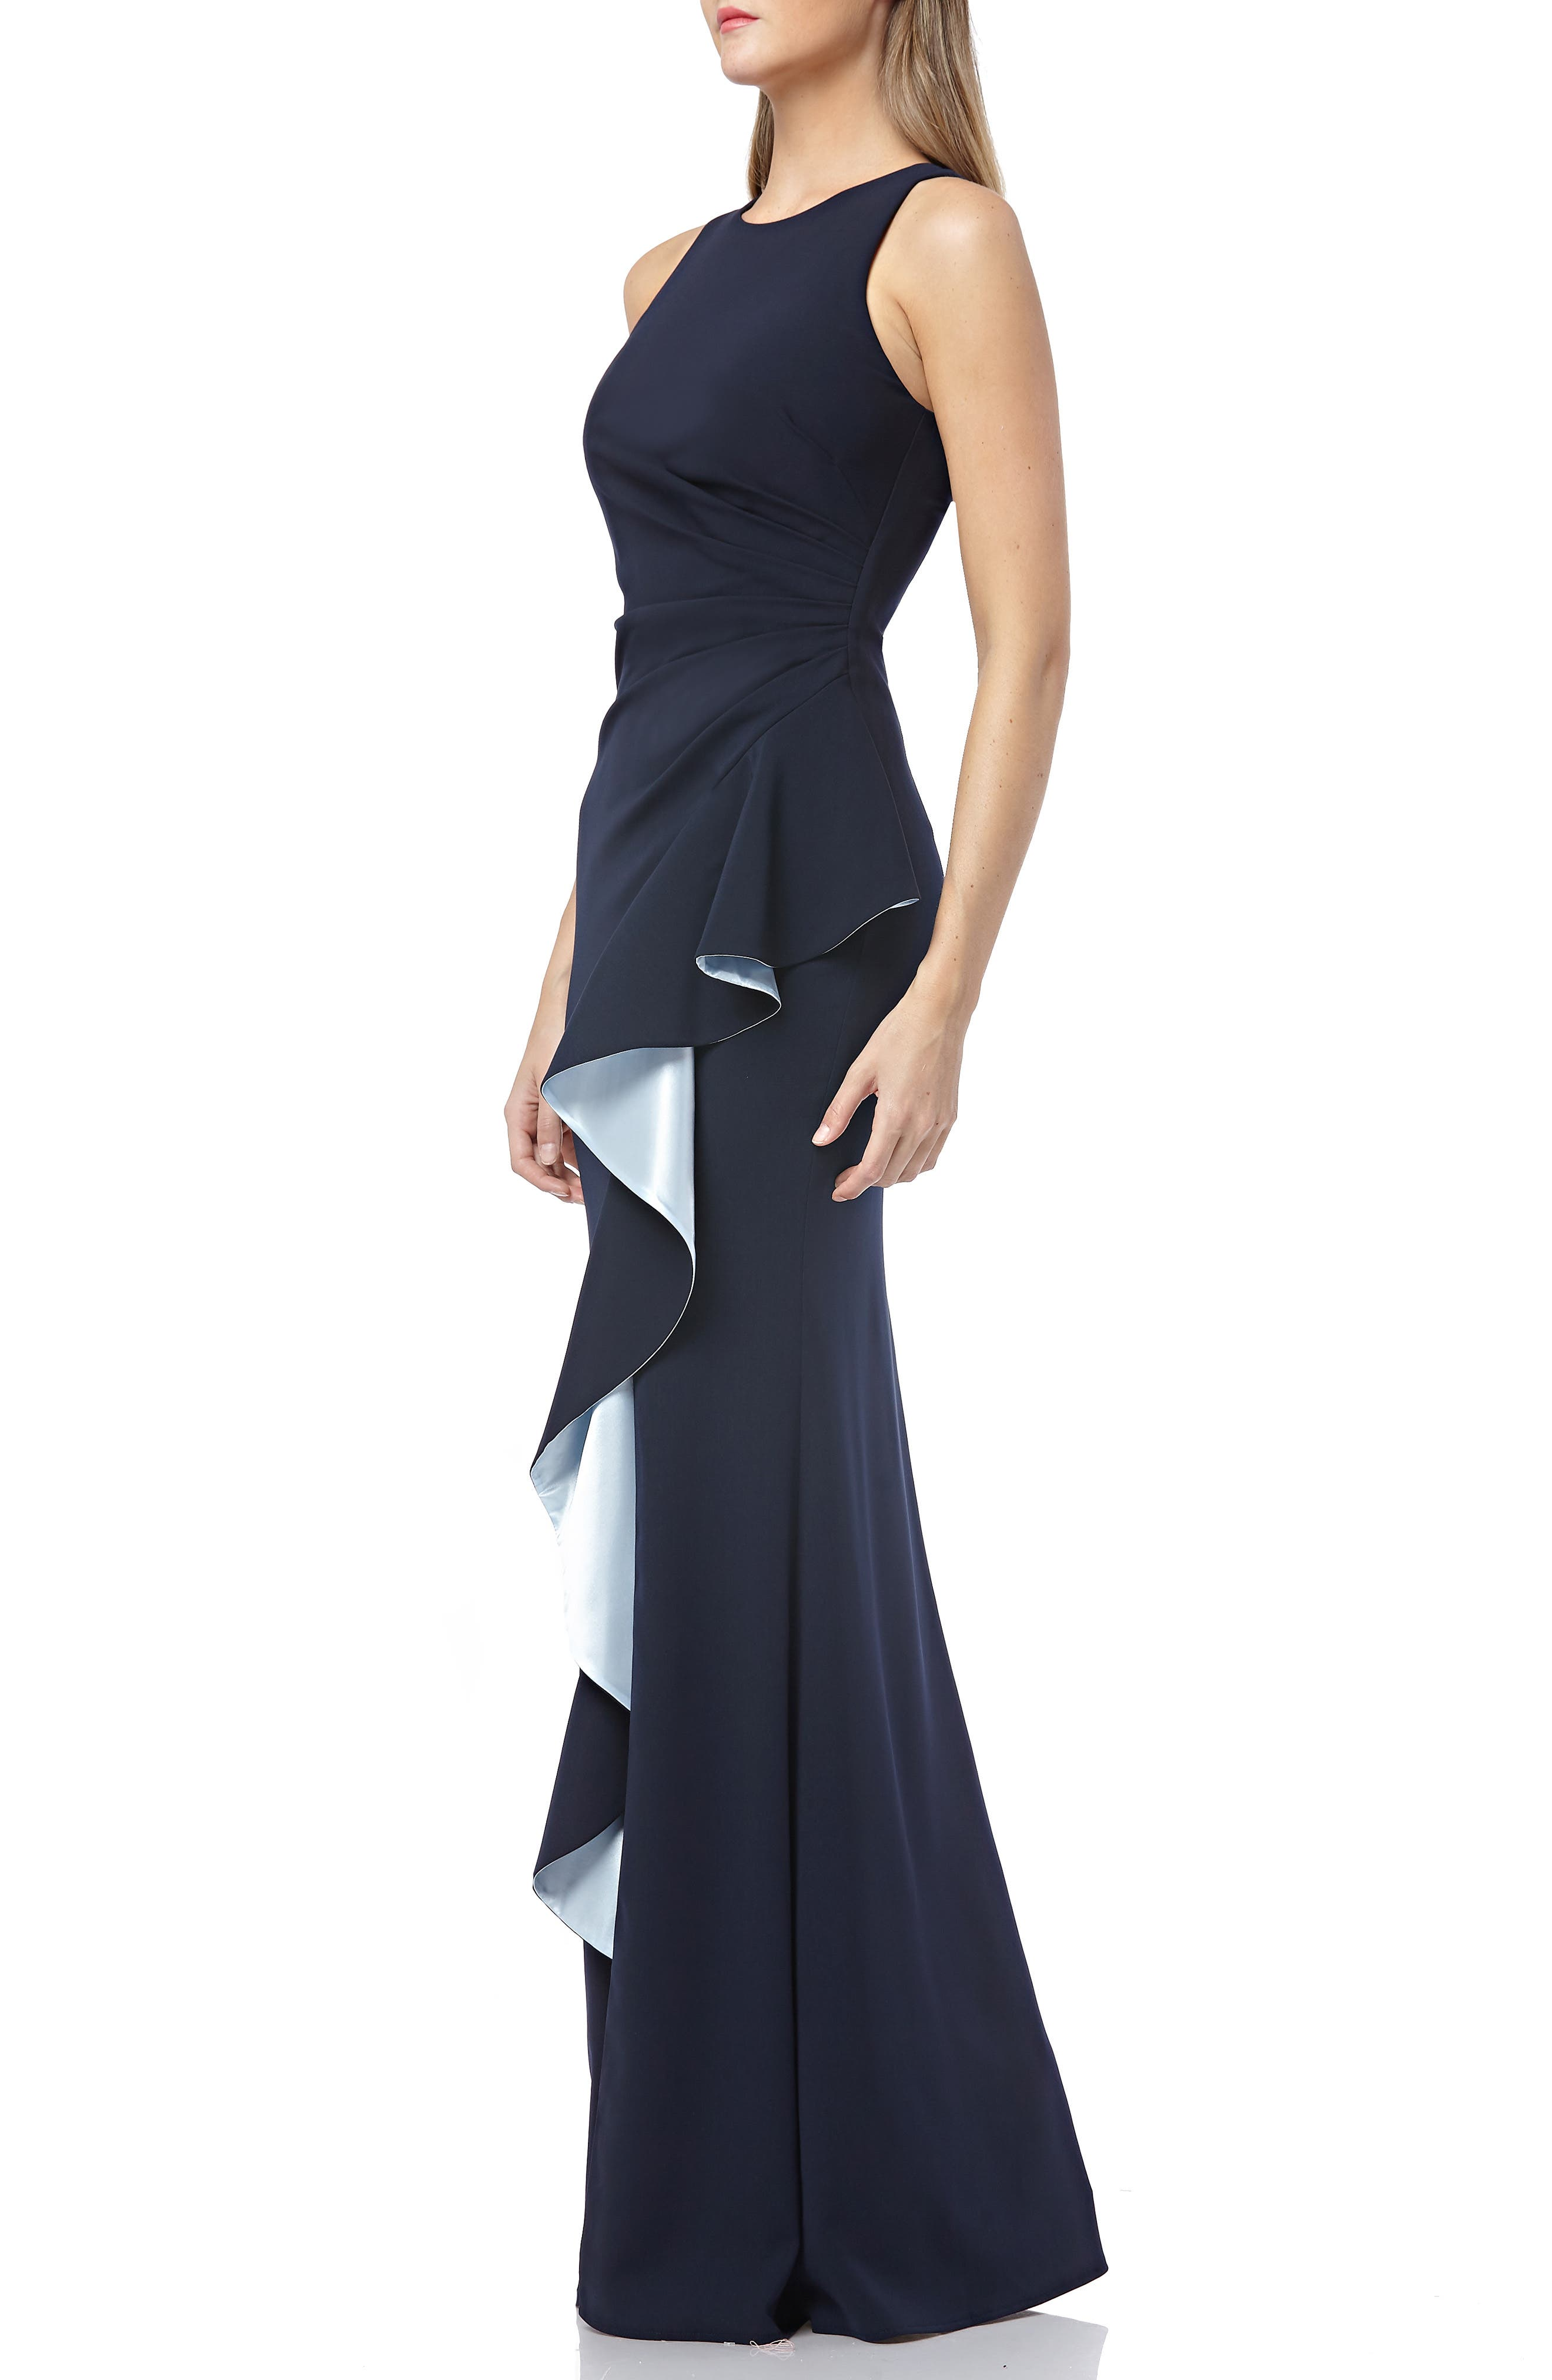 CARMEN MARC VALVO INFUSION, Carmen Marc Valvo Couture Infusion Ruffle Gown, Alternate thumbnail 4, color, NAVY/ ICE BLUE